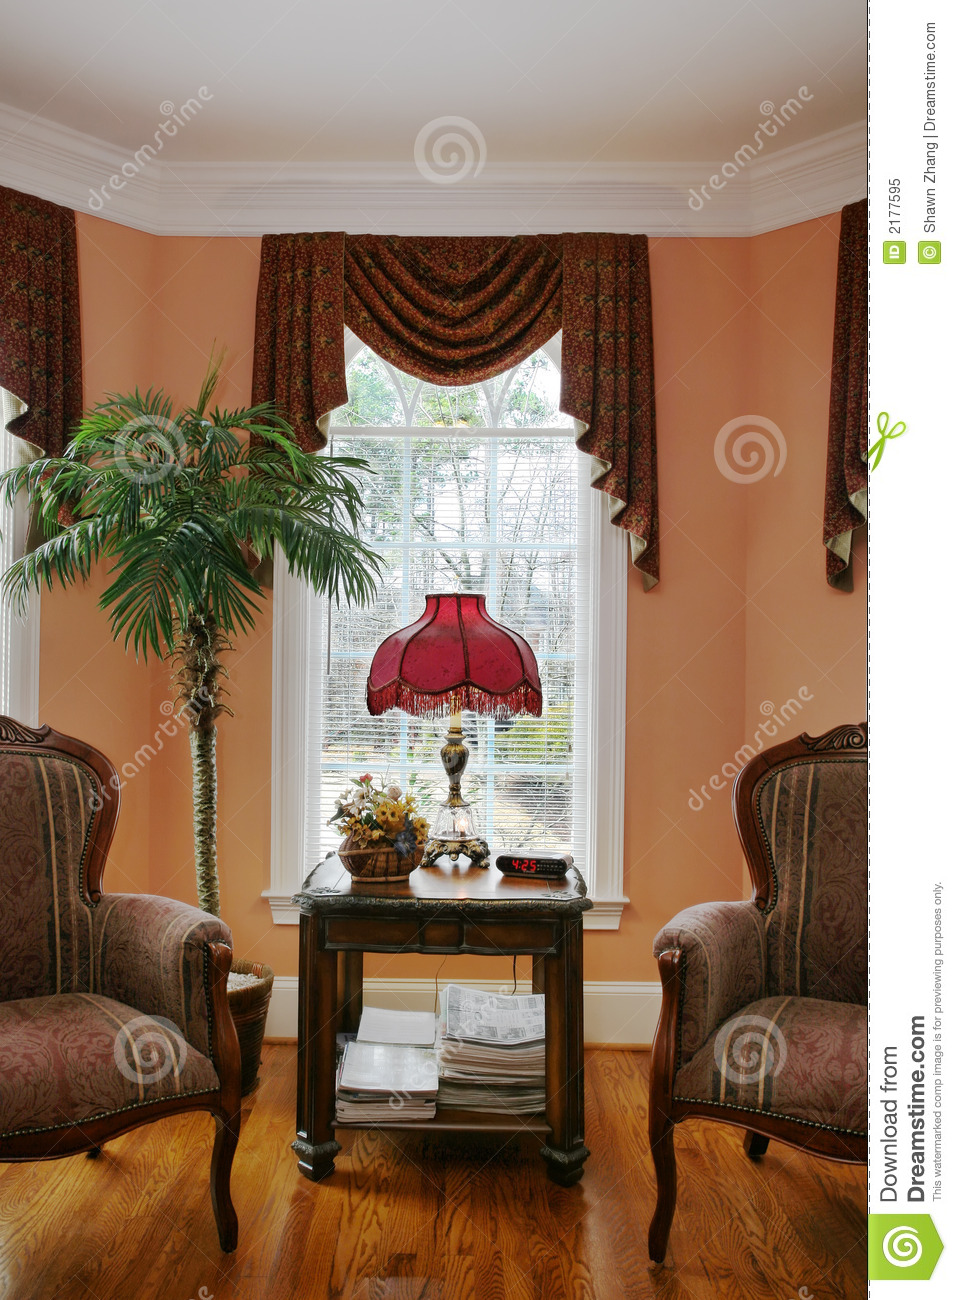 Living room with bay window stock image image 2177595 - Living room with bay window ...